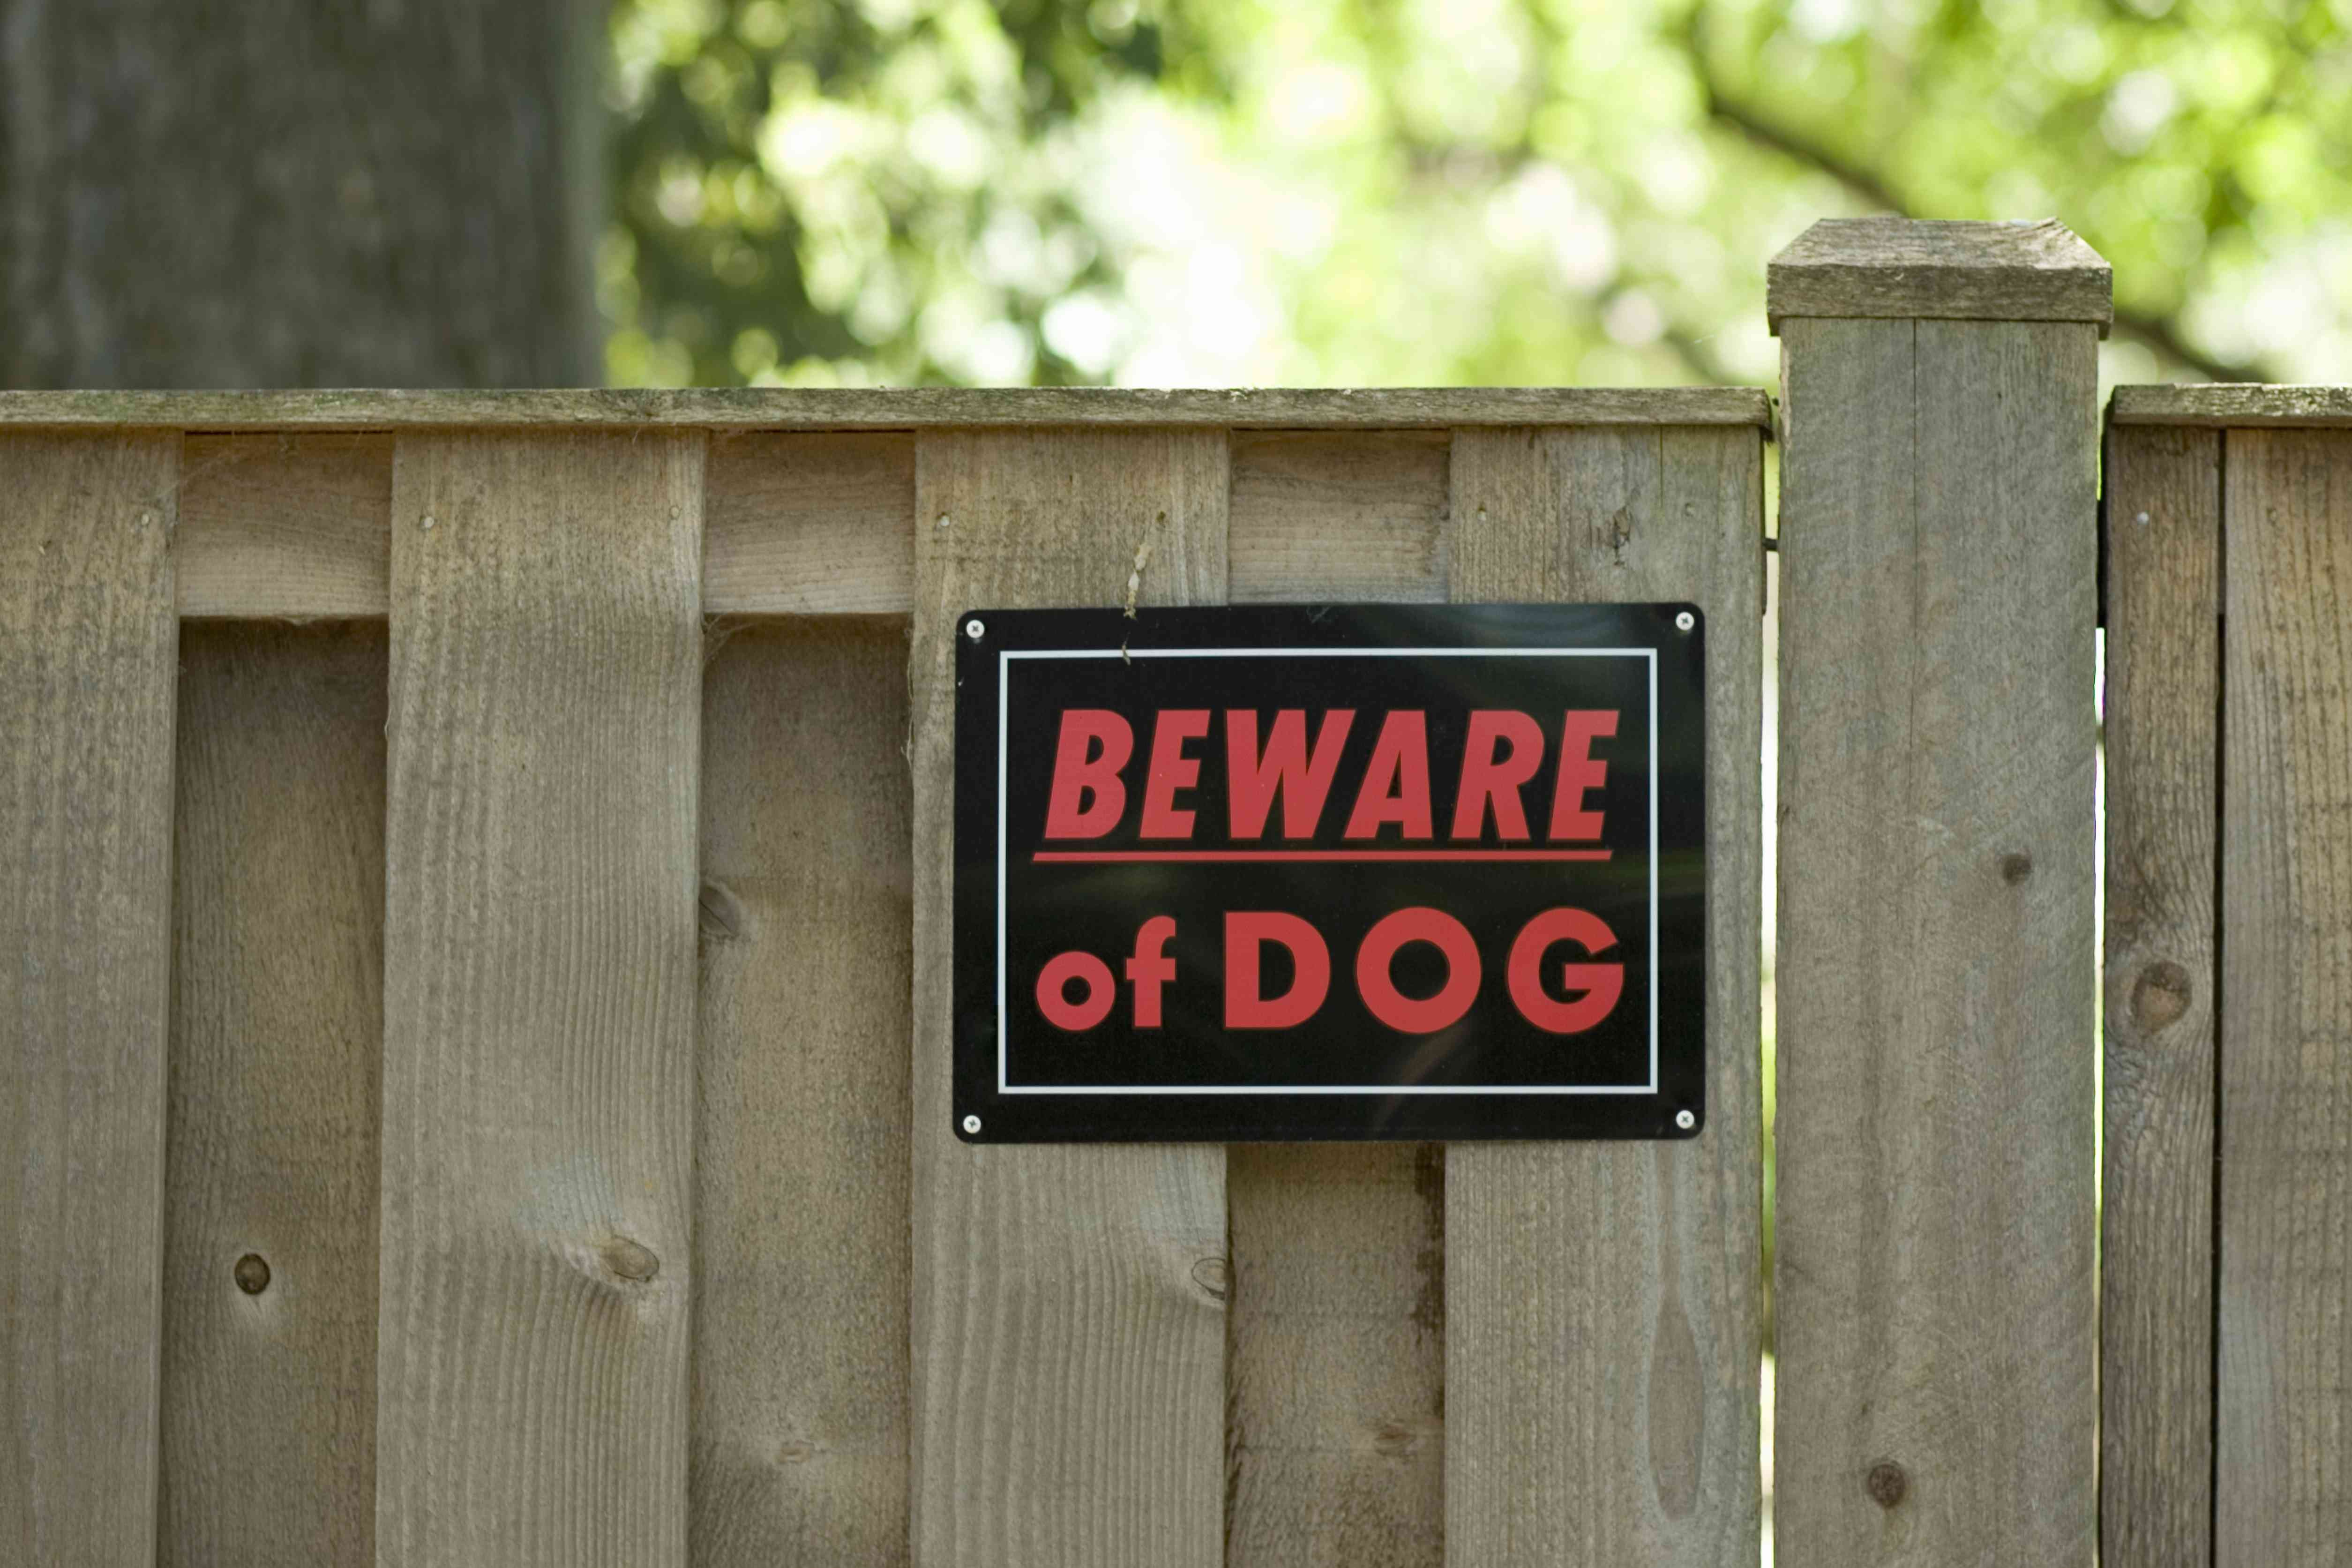 Beware of dog sign on wooden fence